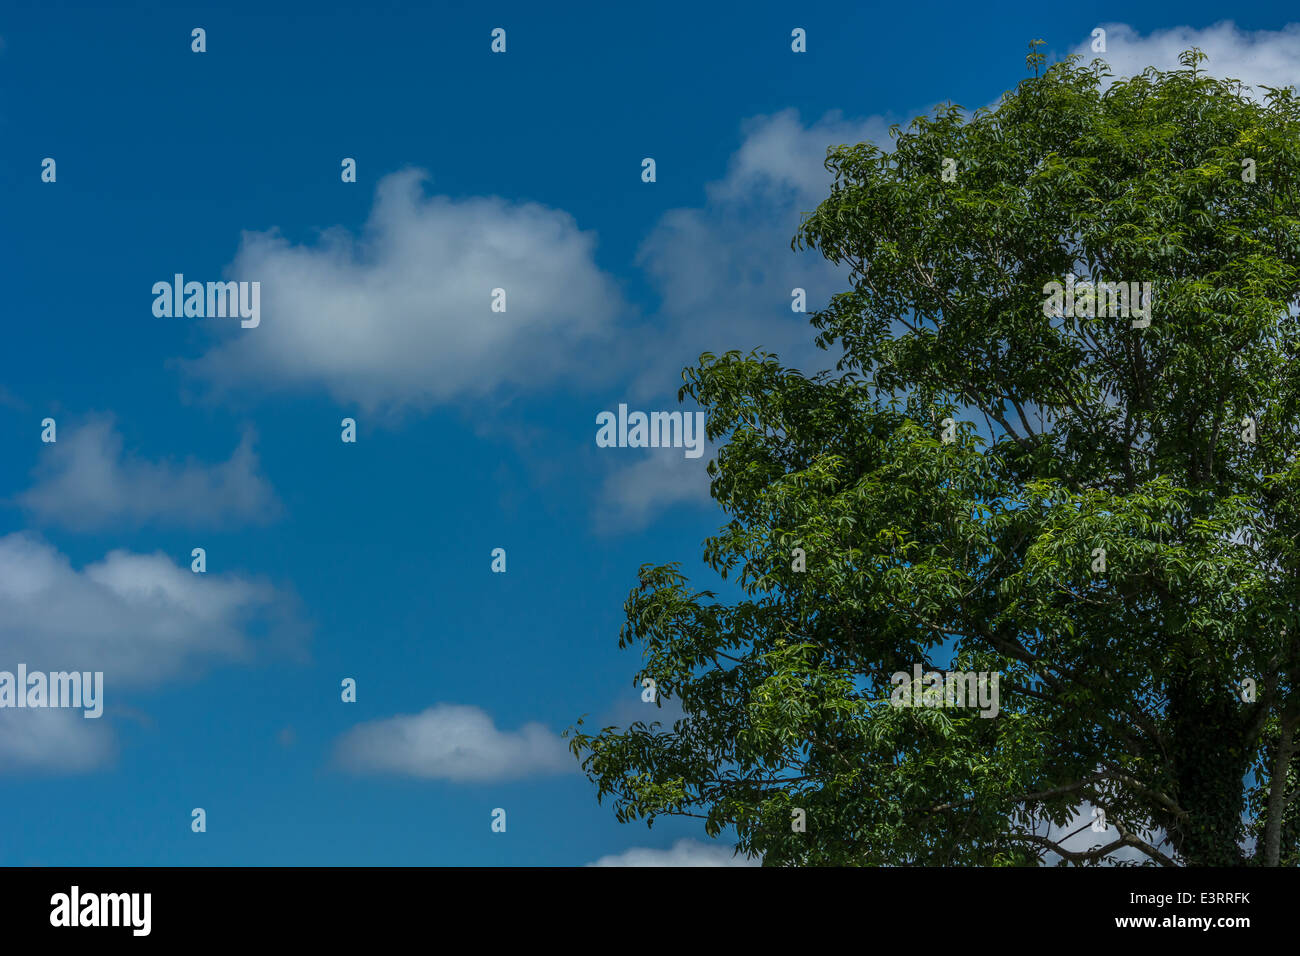 Fluffy clouds on a summer's day; tree foliage in foreground. 'Head in the clouds' metaphor, and cloud - Stock Image